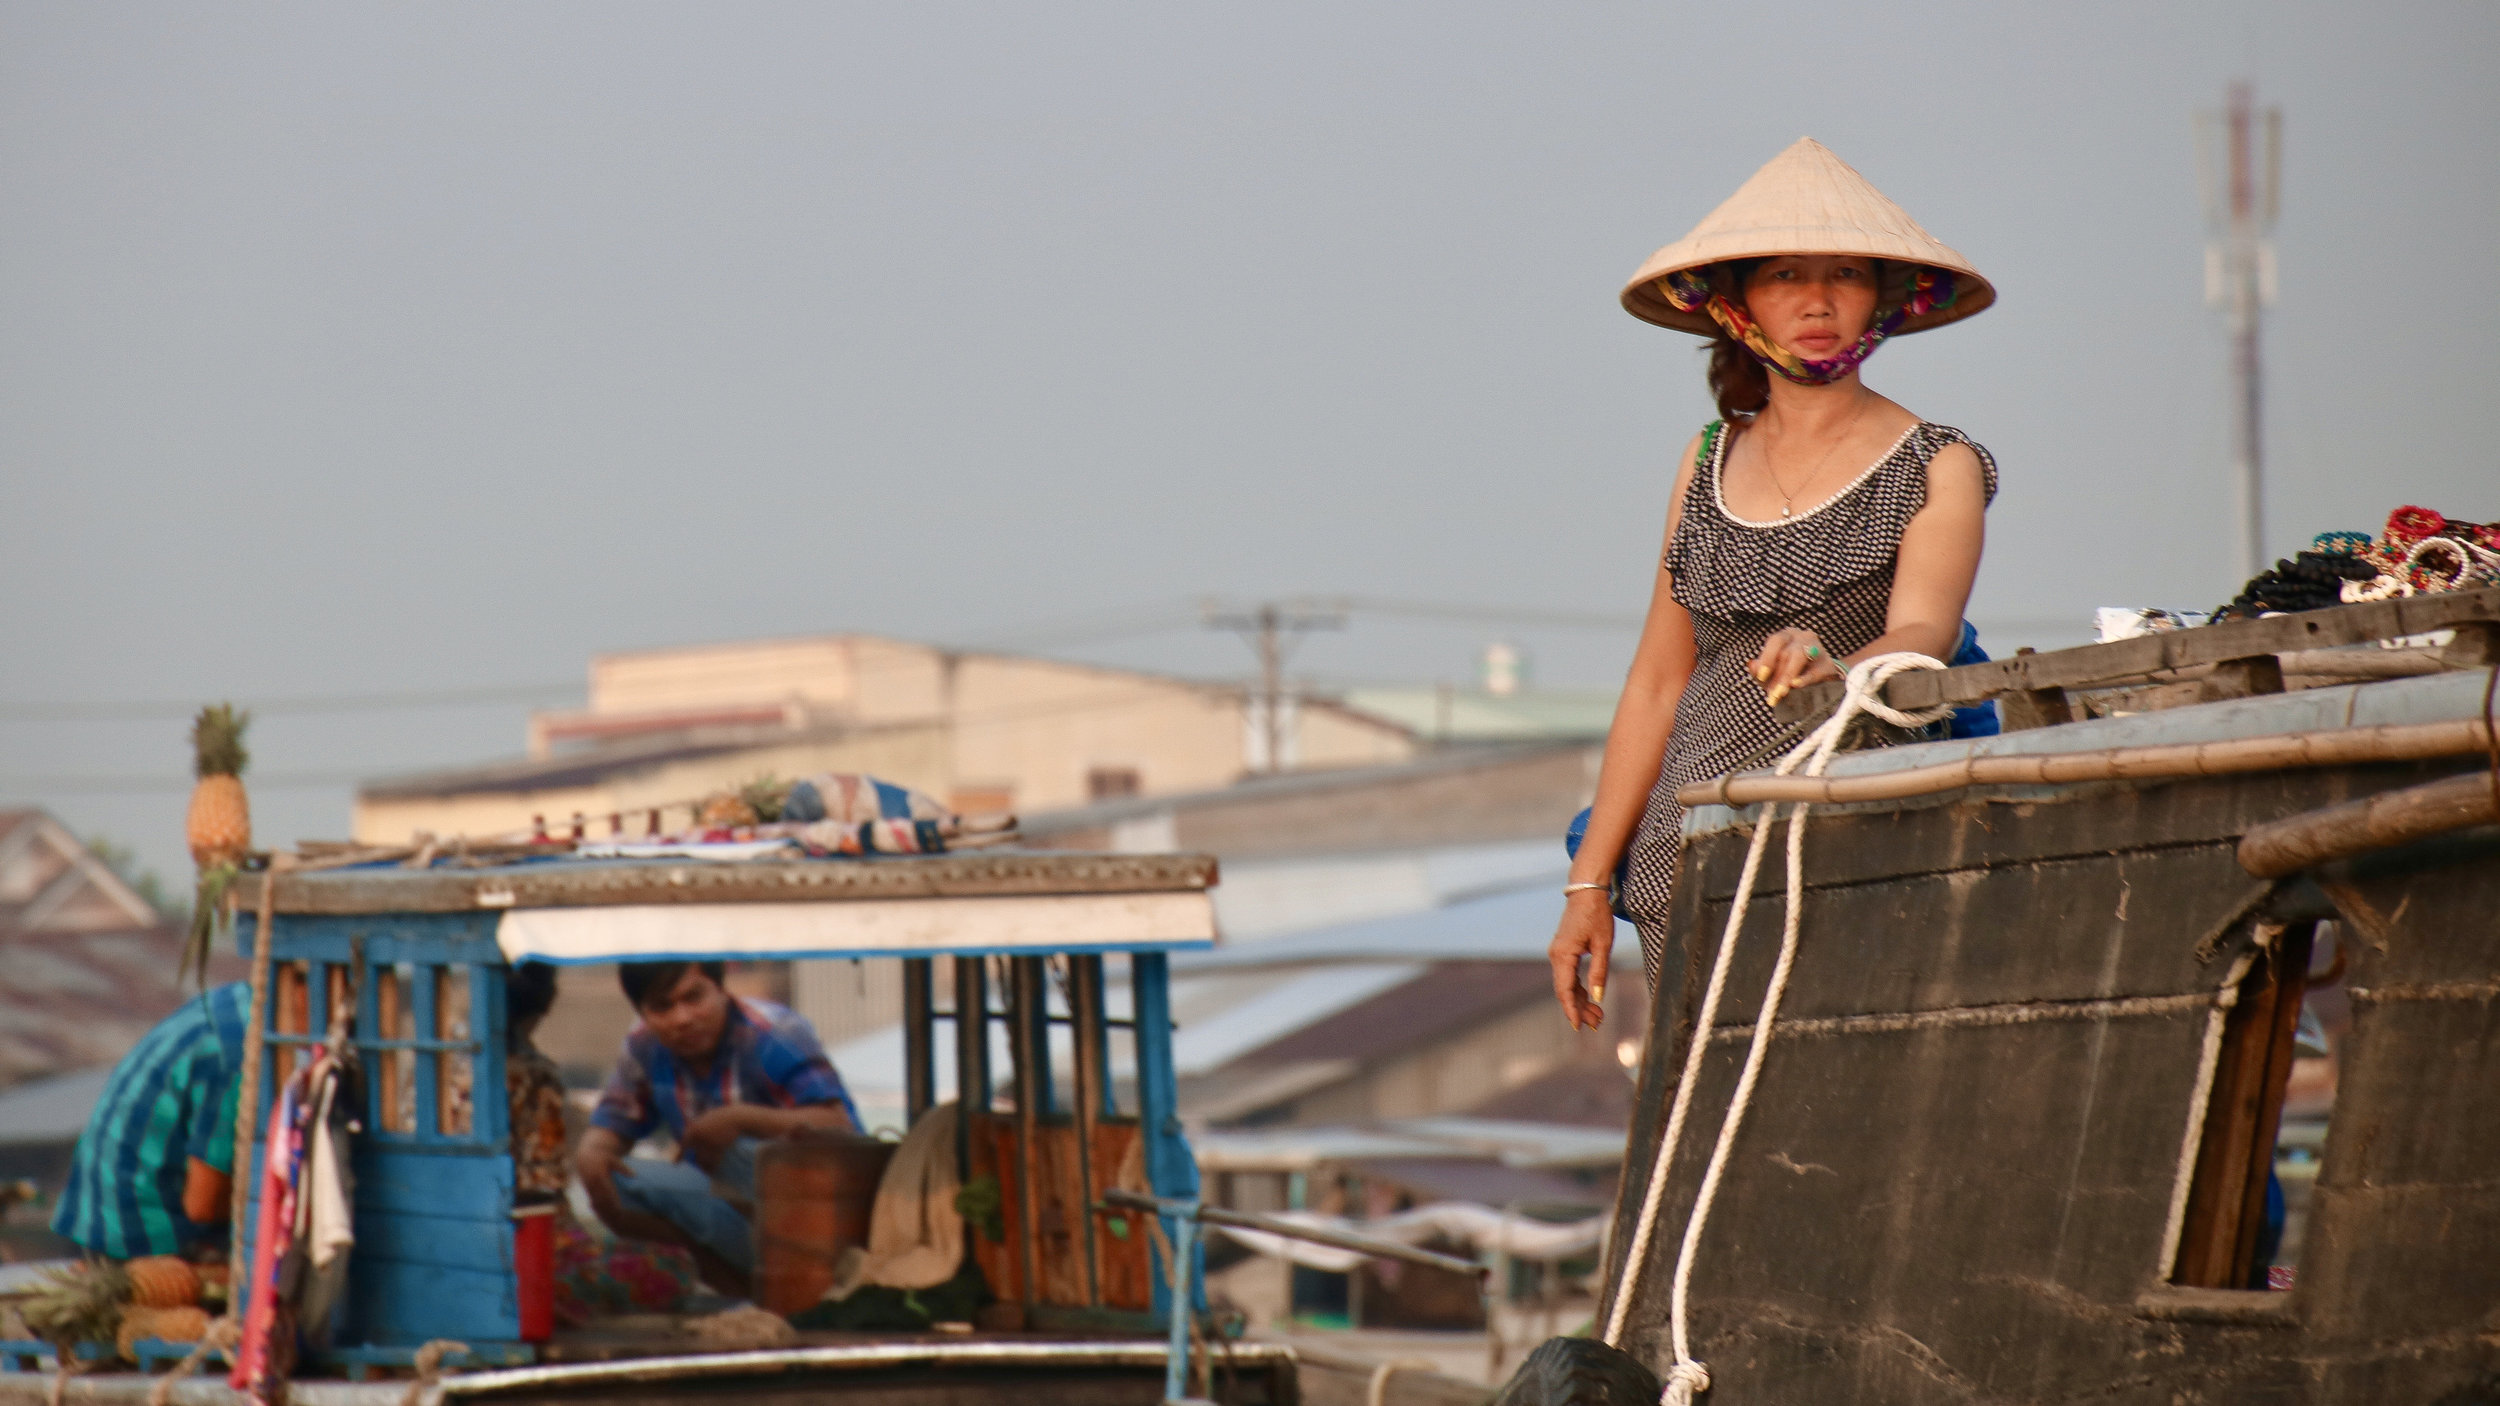 Can Tho boat, 15 really useful things to know before travelling to Vietnam. Across Land & Sea